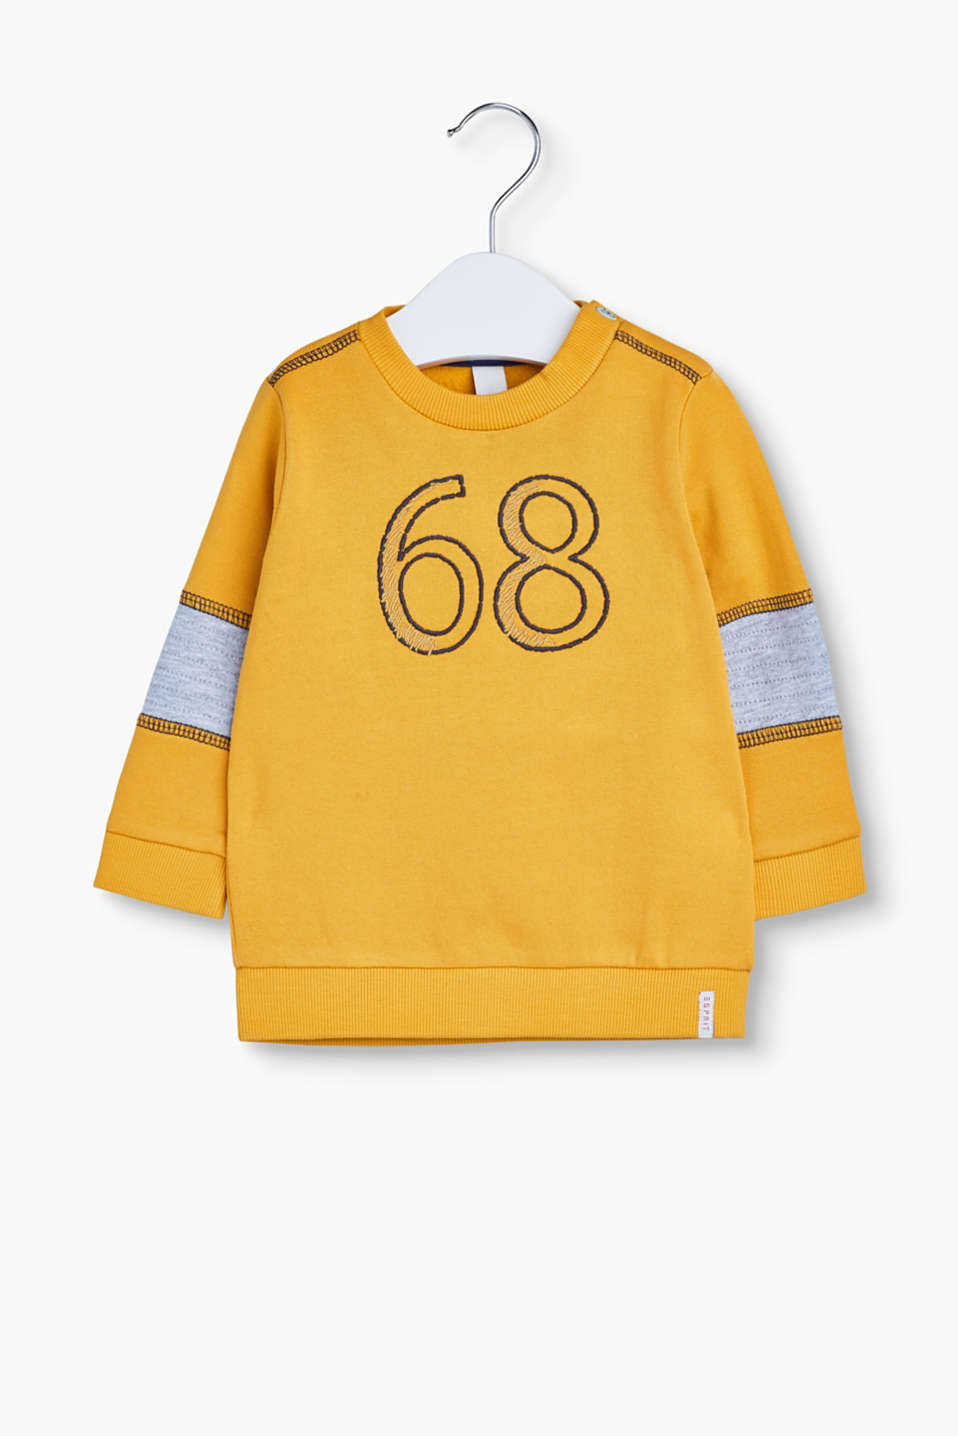 Big college style for little ones! The embroidered 68 on this soft cotton sweatshirt catches the eye.